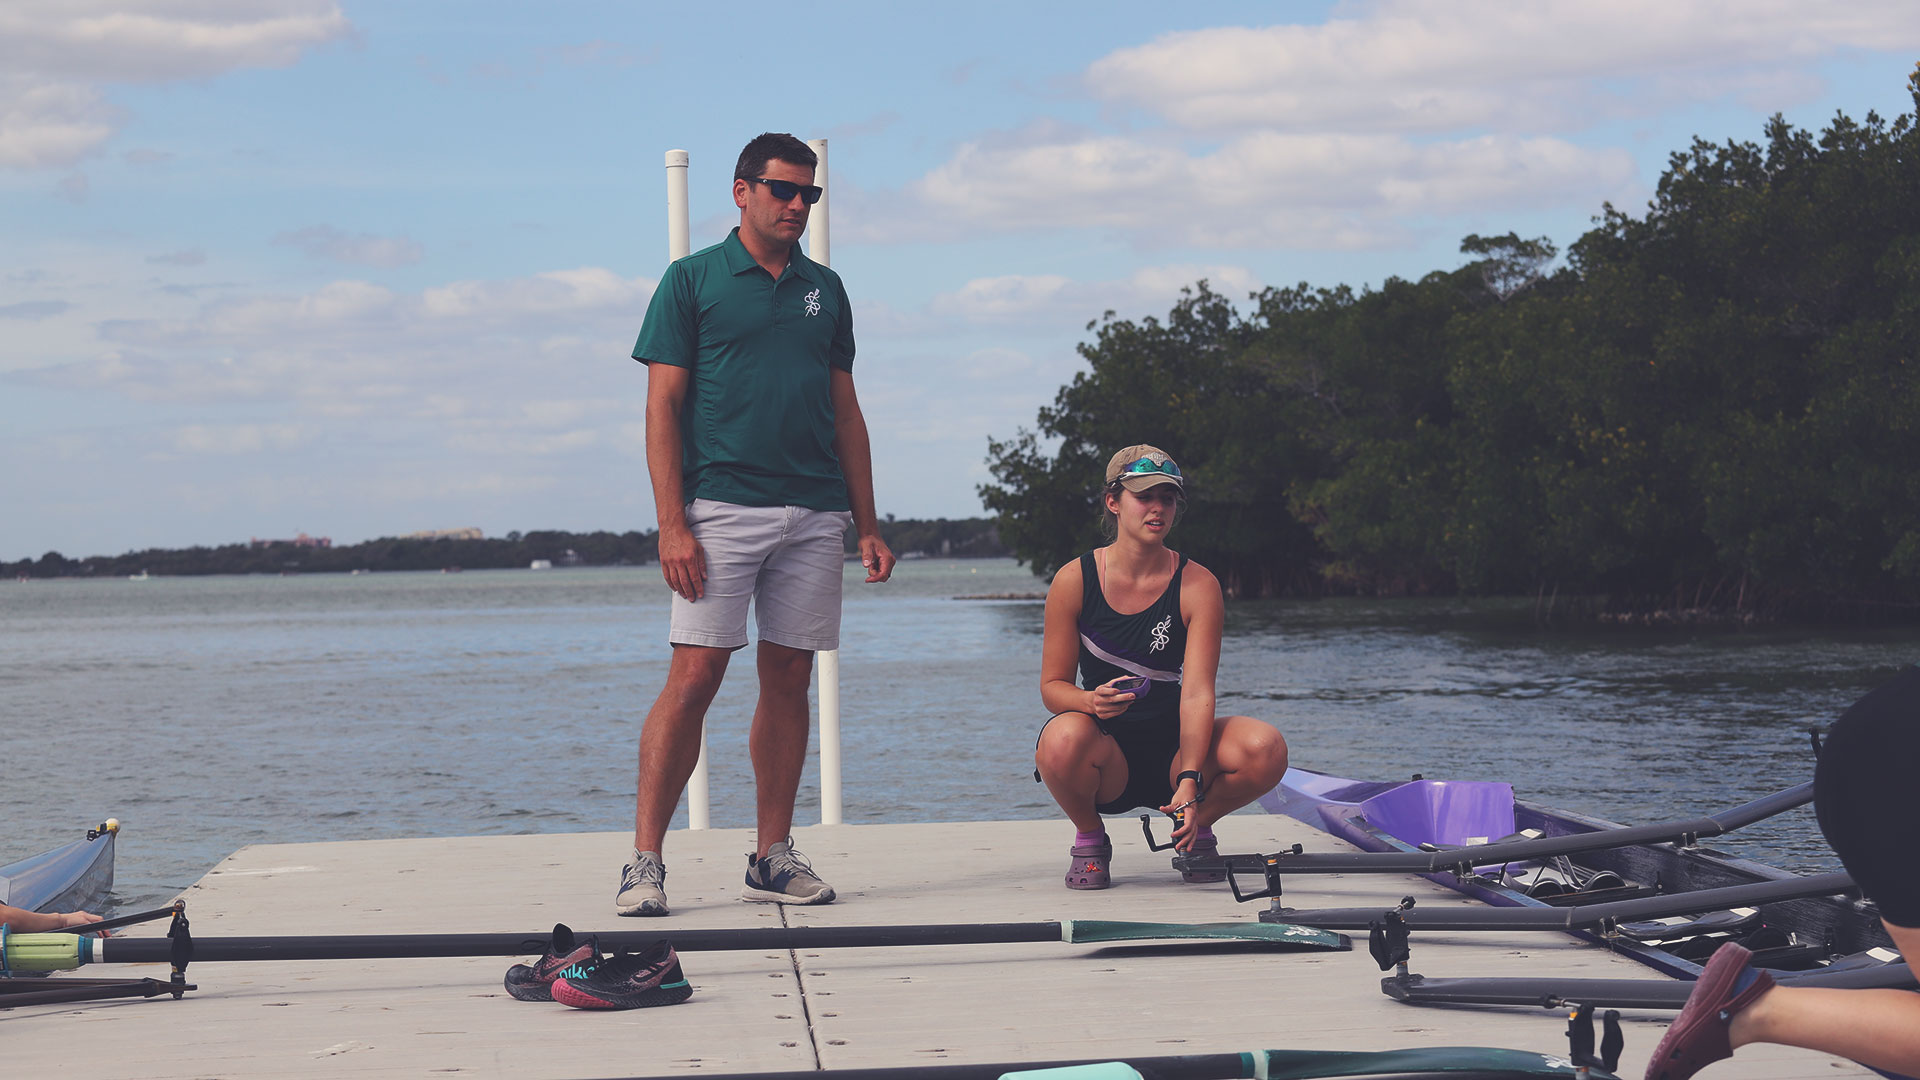 New Coach Greg Wood joins the Scullers